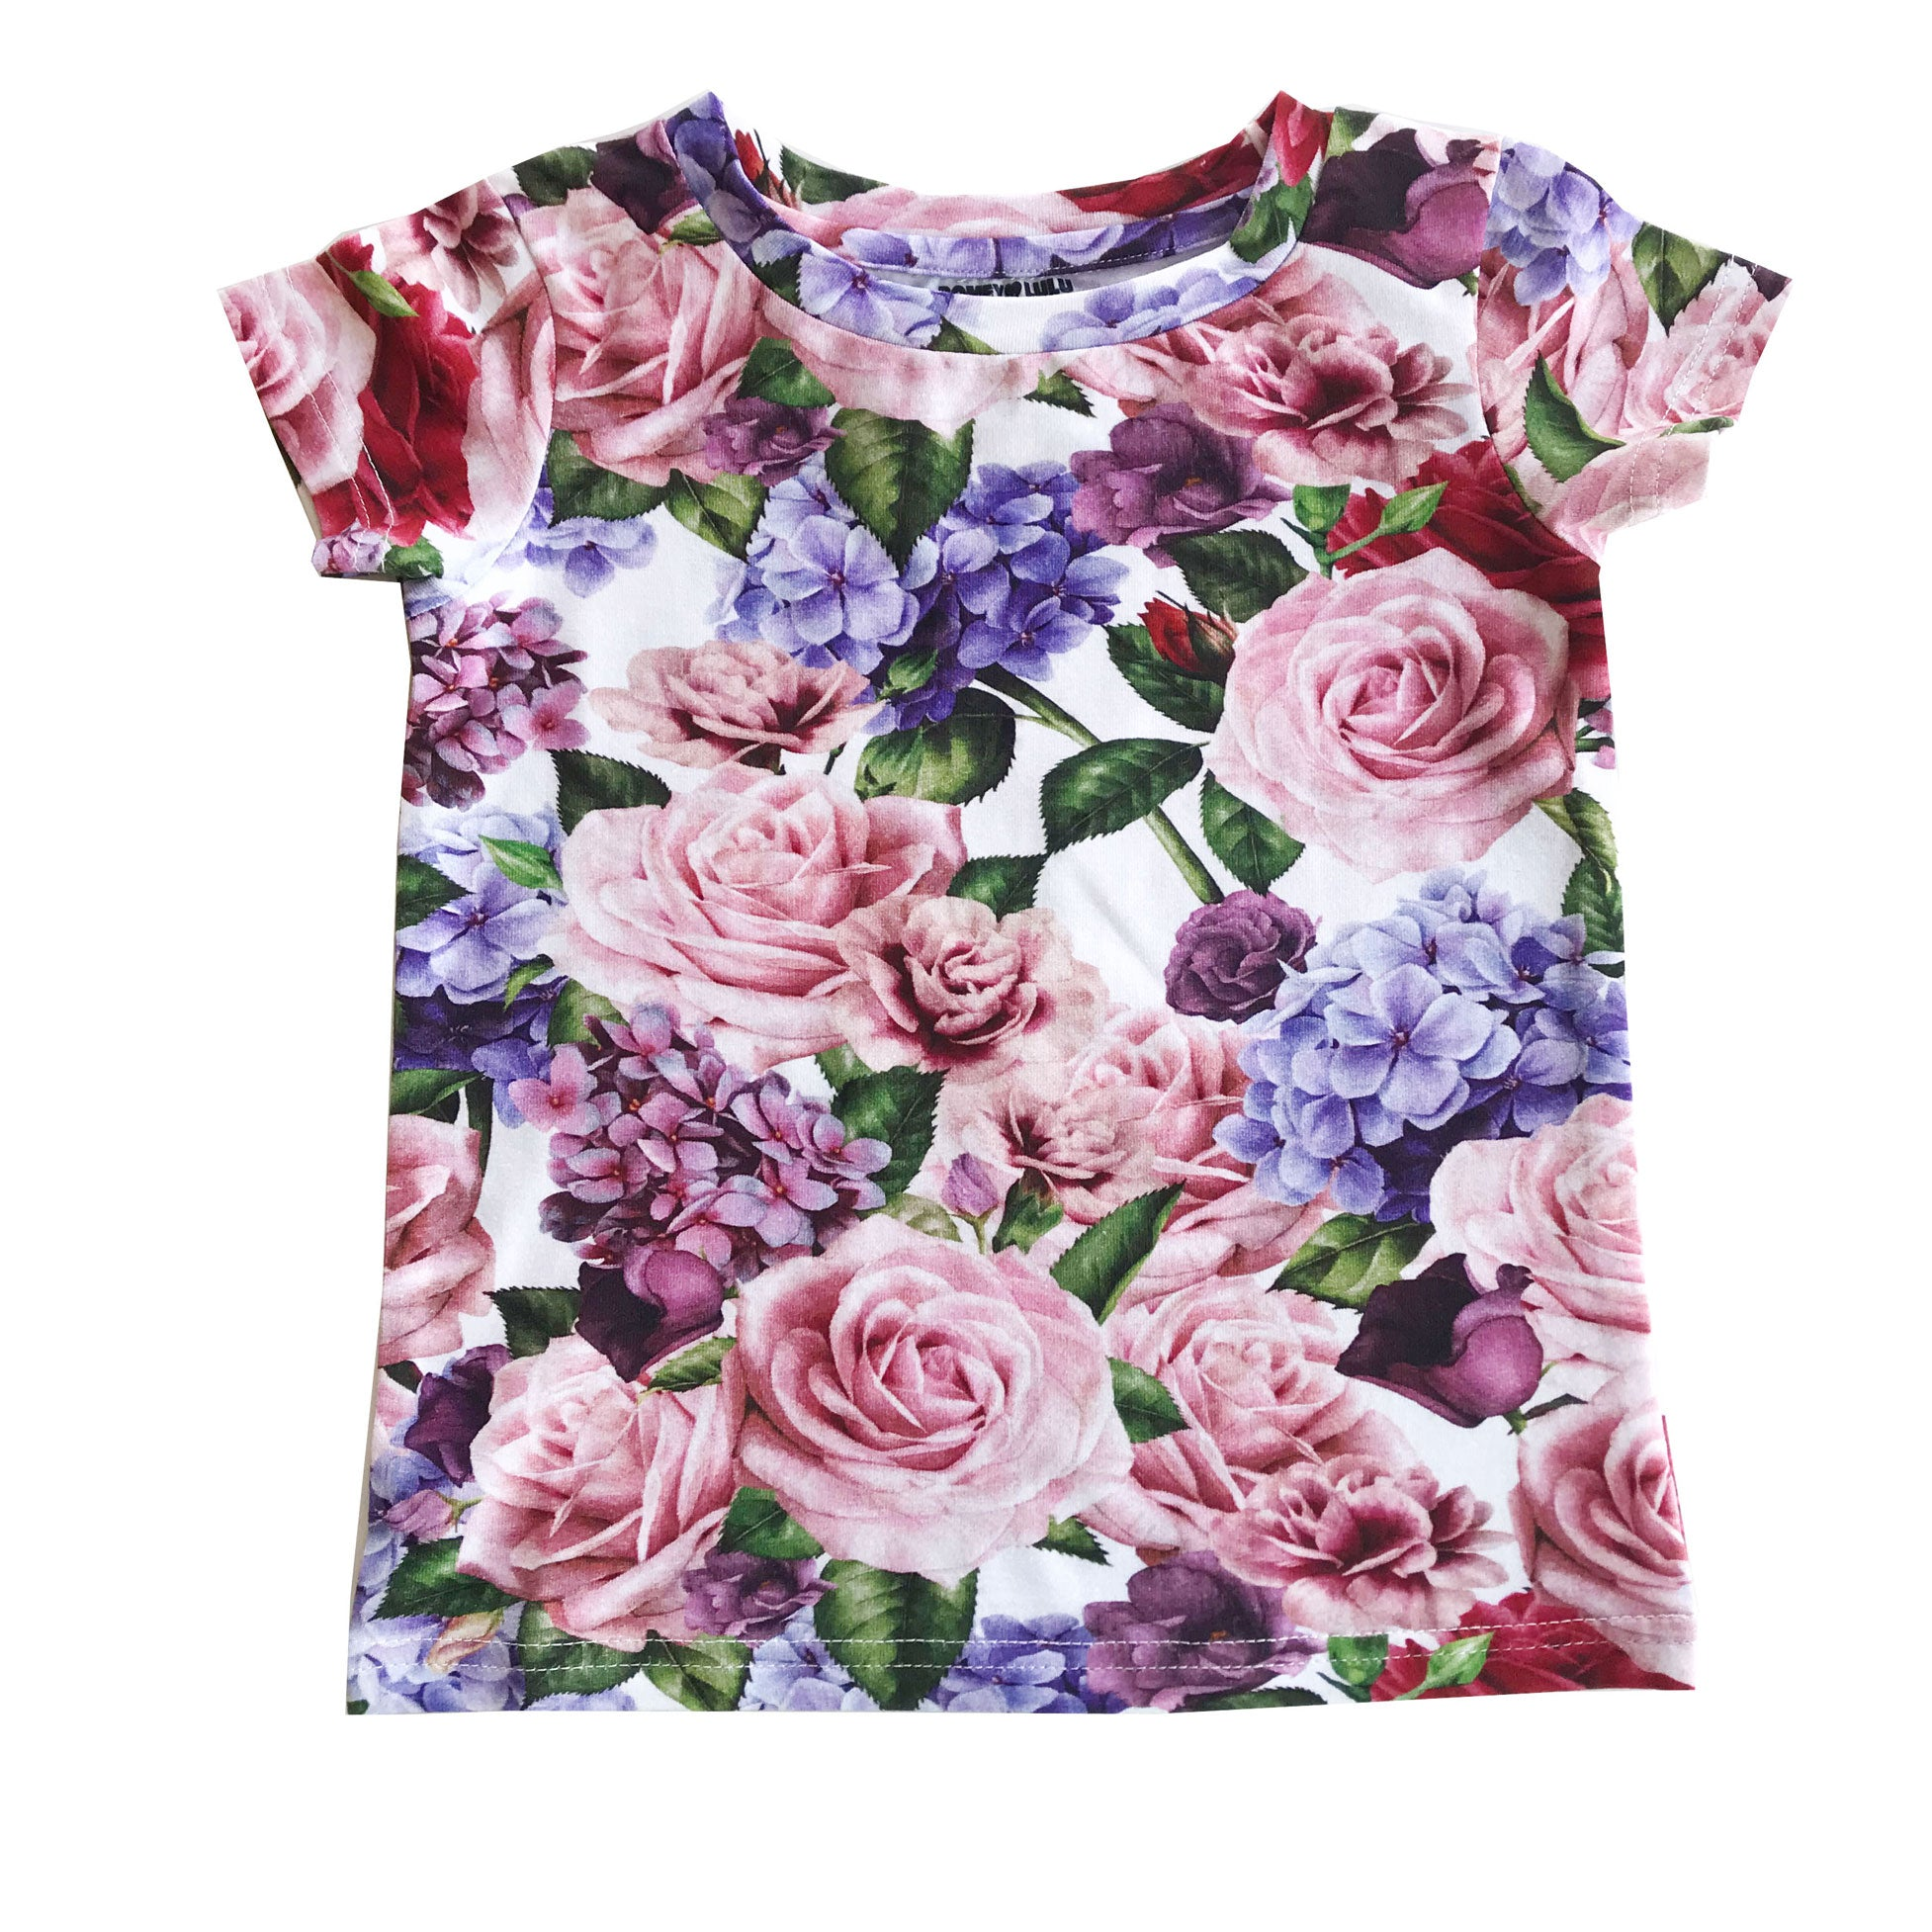 Romey Loves Lulu Roses T-shirt